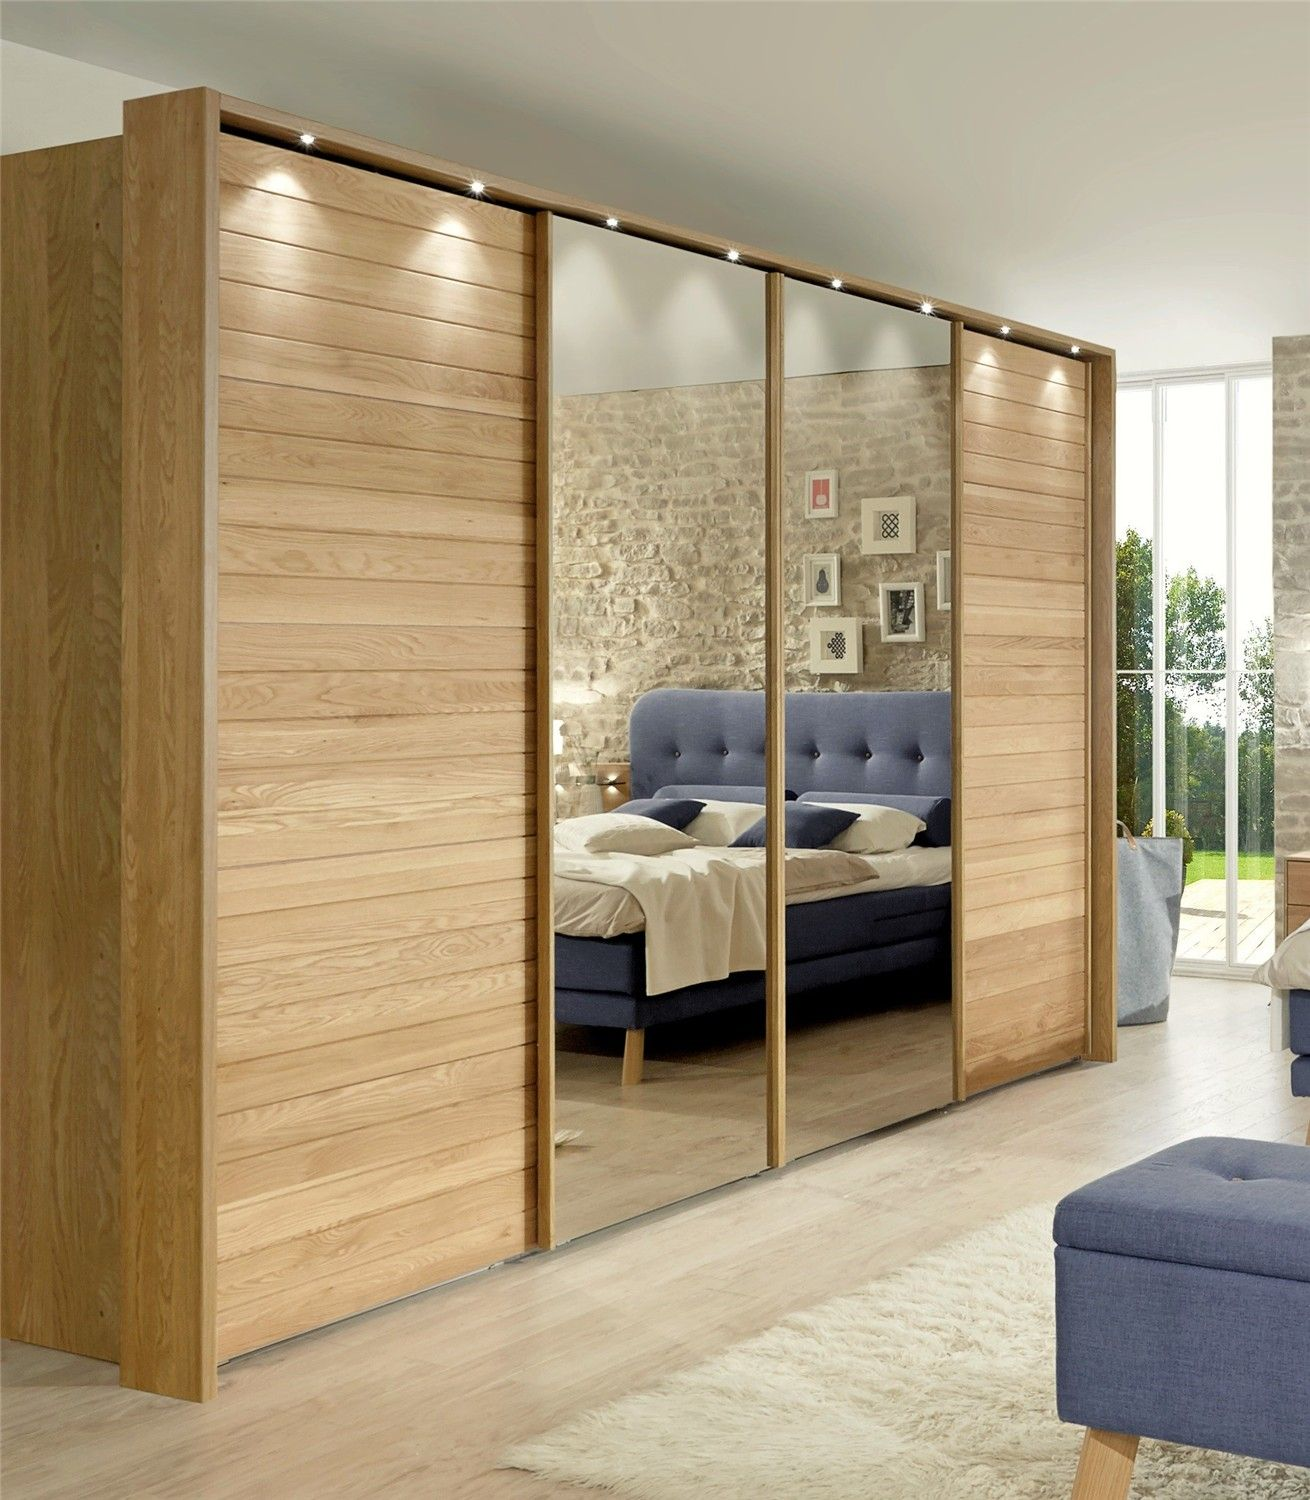 jupiter by stylform semi solid oak and glass or mirror sliding door wardrobejpeg 13101500 jupiter by stylform semi solid oak and glass or mirror sliding door